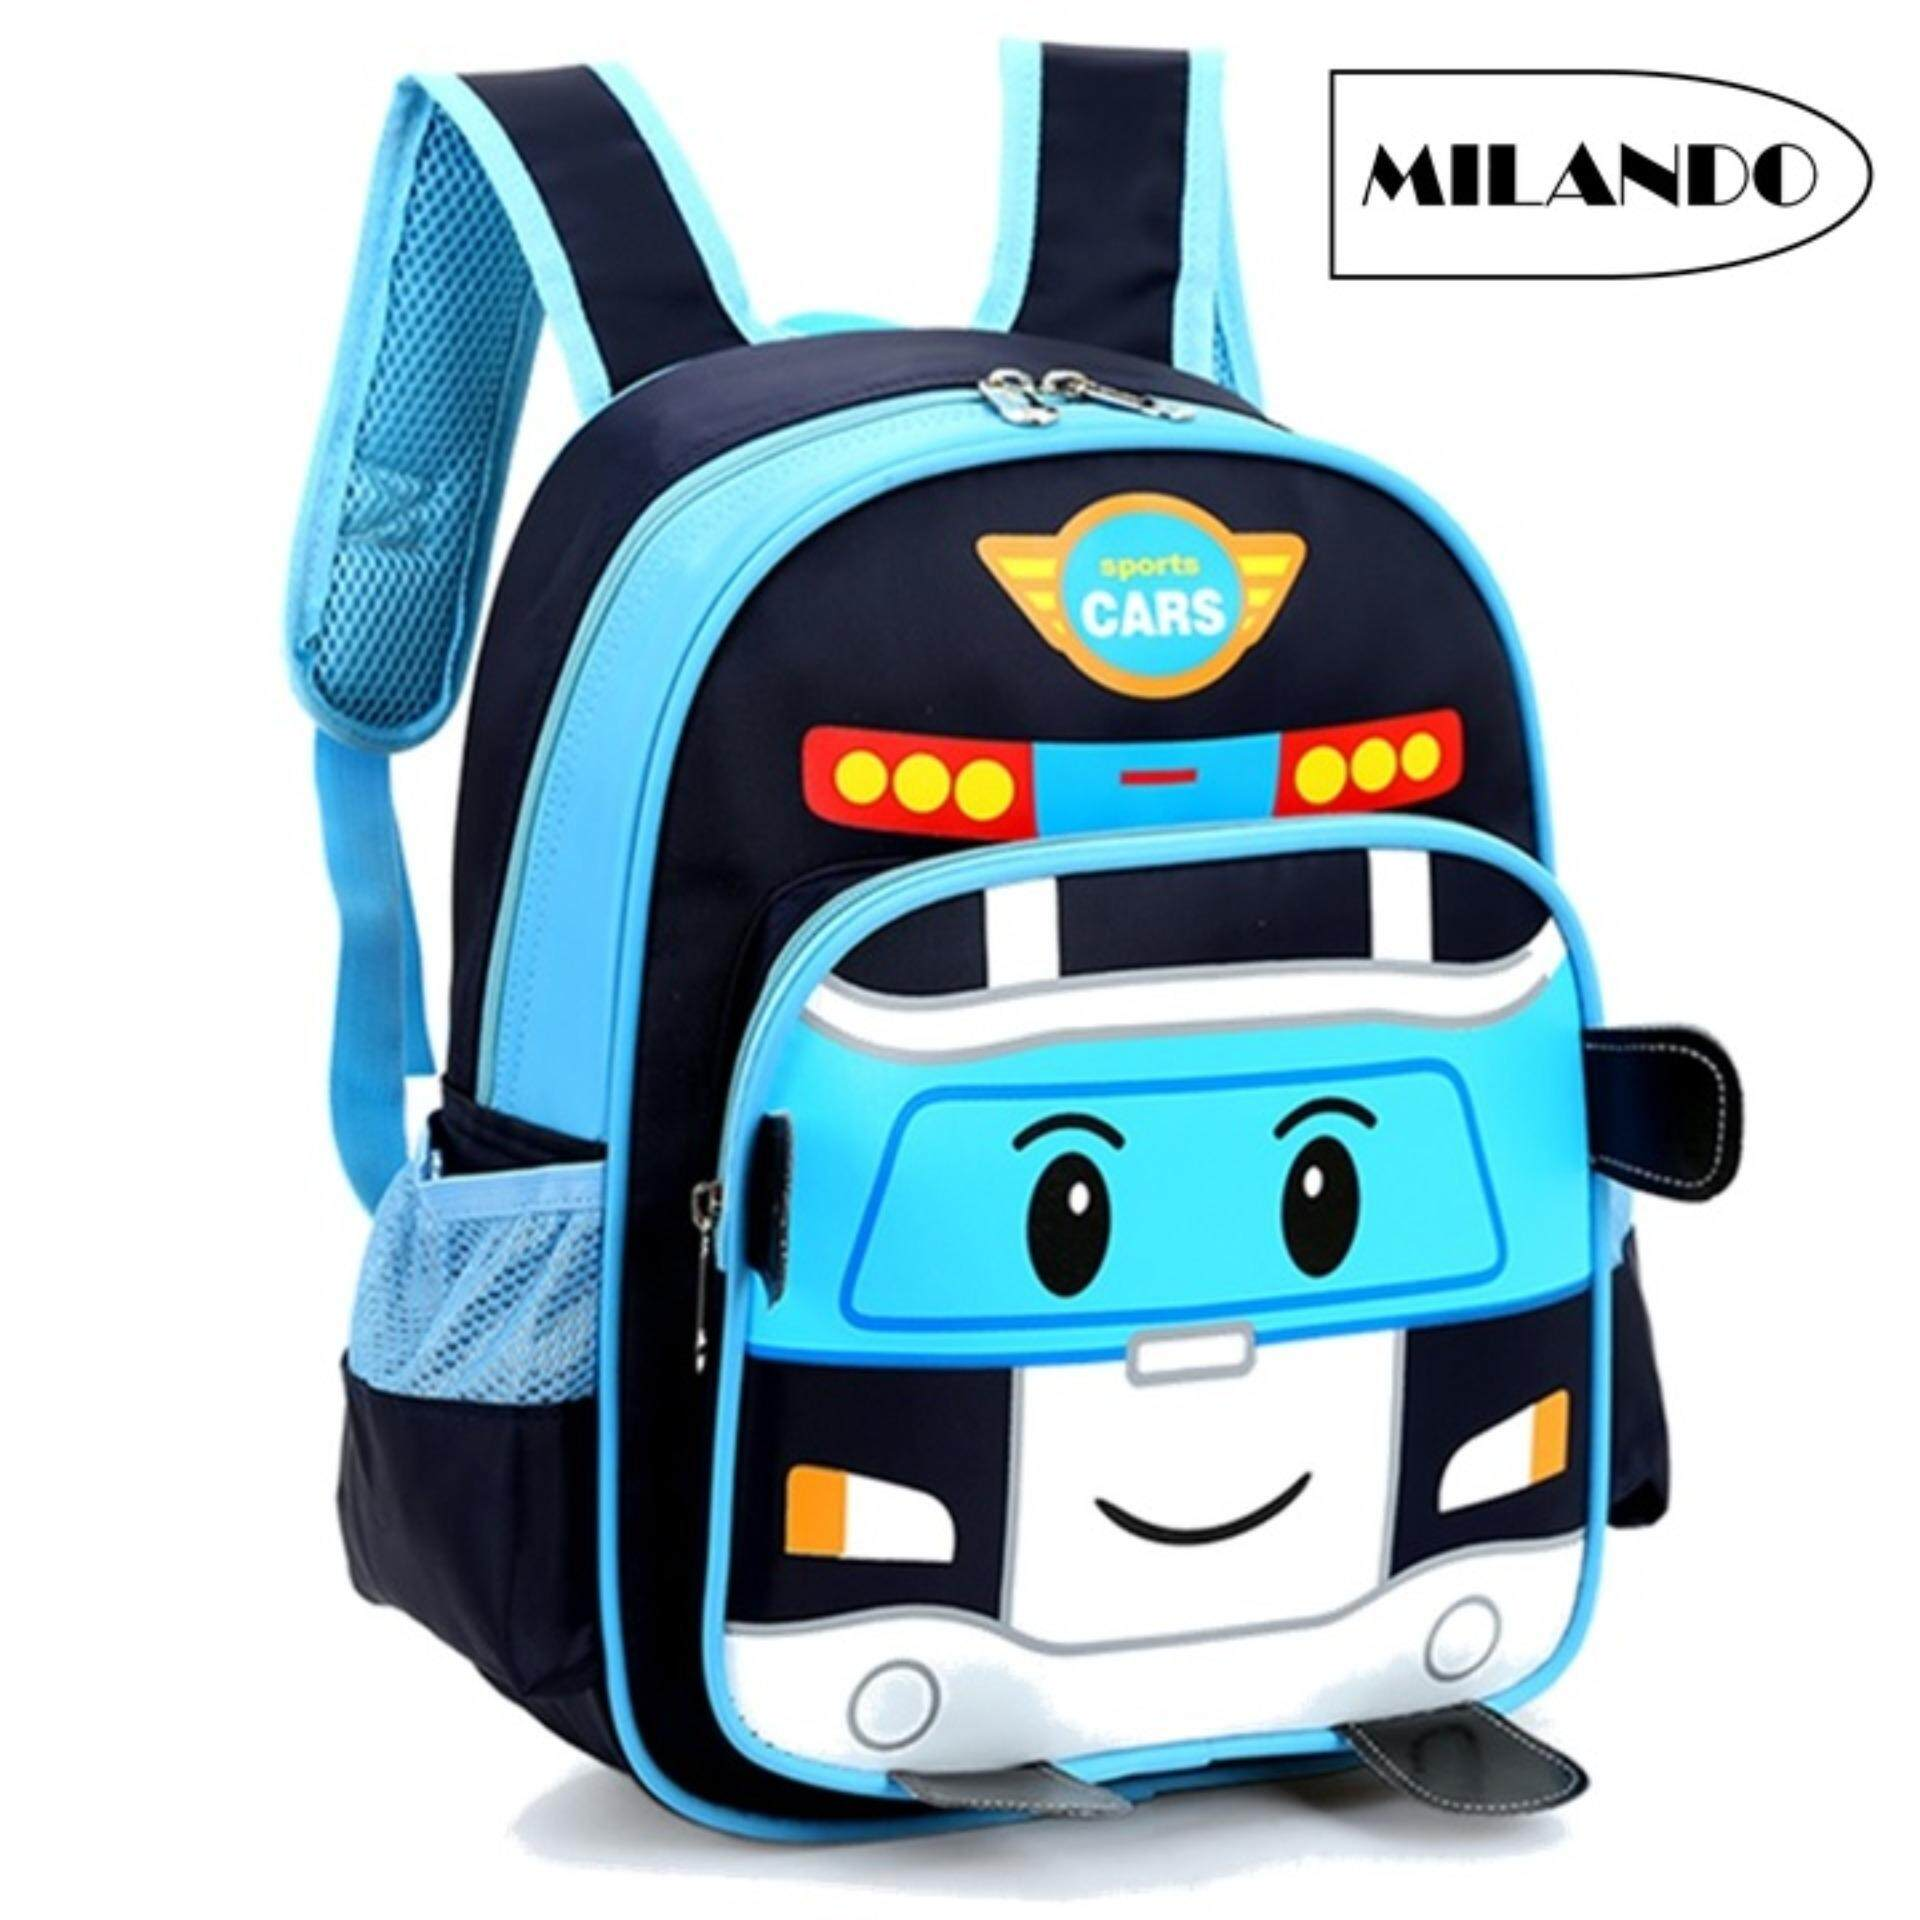 eeb3b9beb8 MILANDO Kid Poli Car Design School Bag Backpack Kindergarten Bag Bags Beg  Sekolah